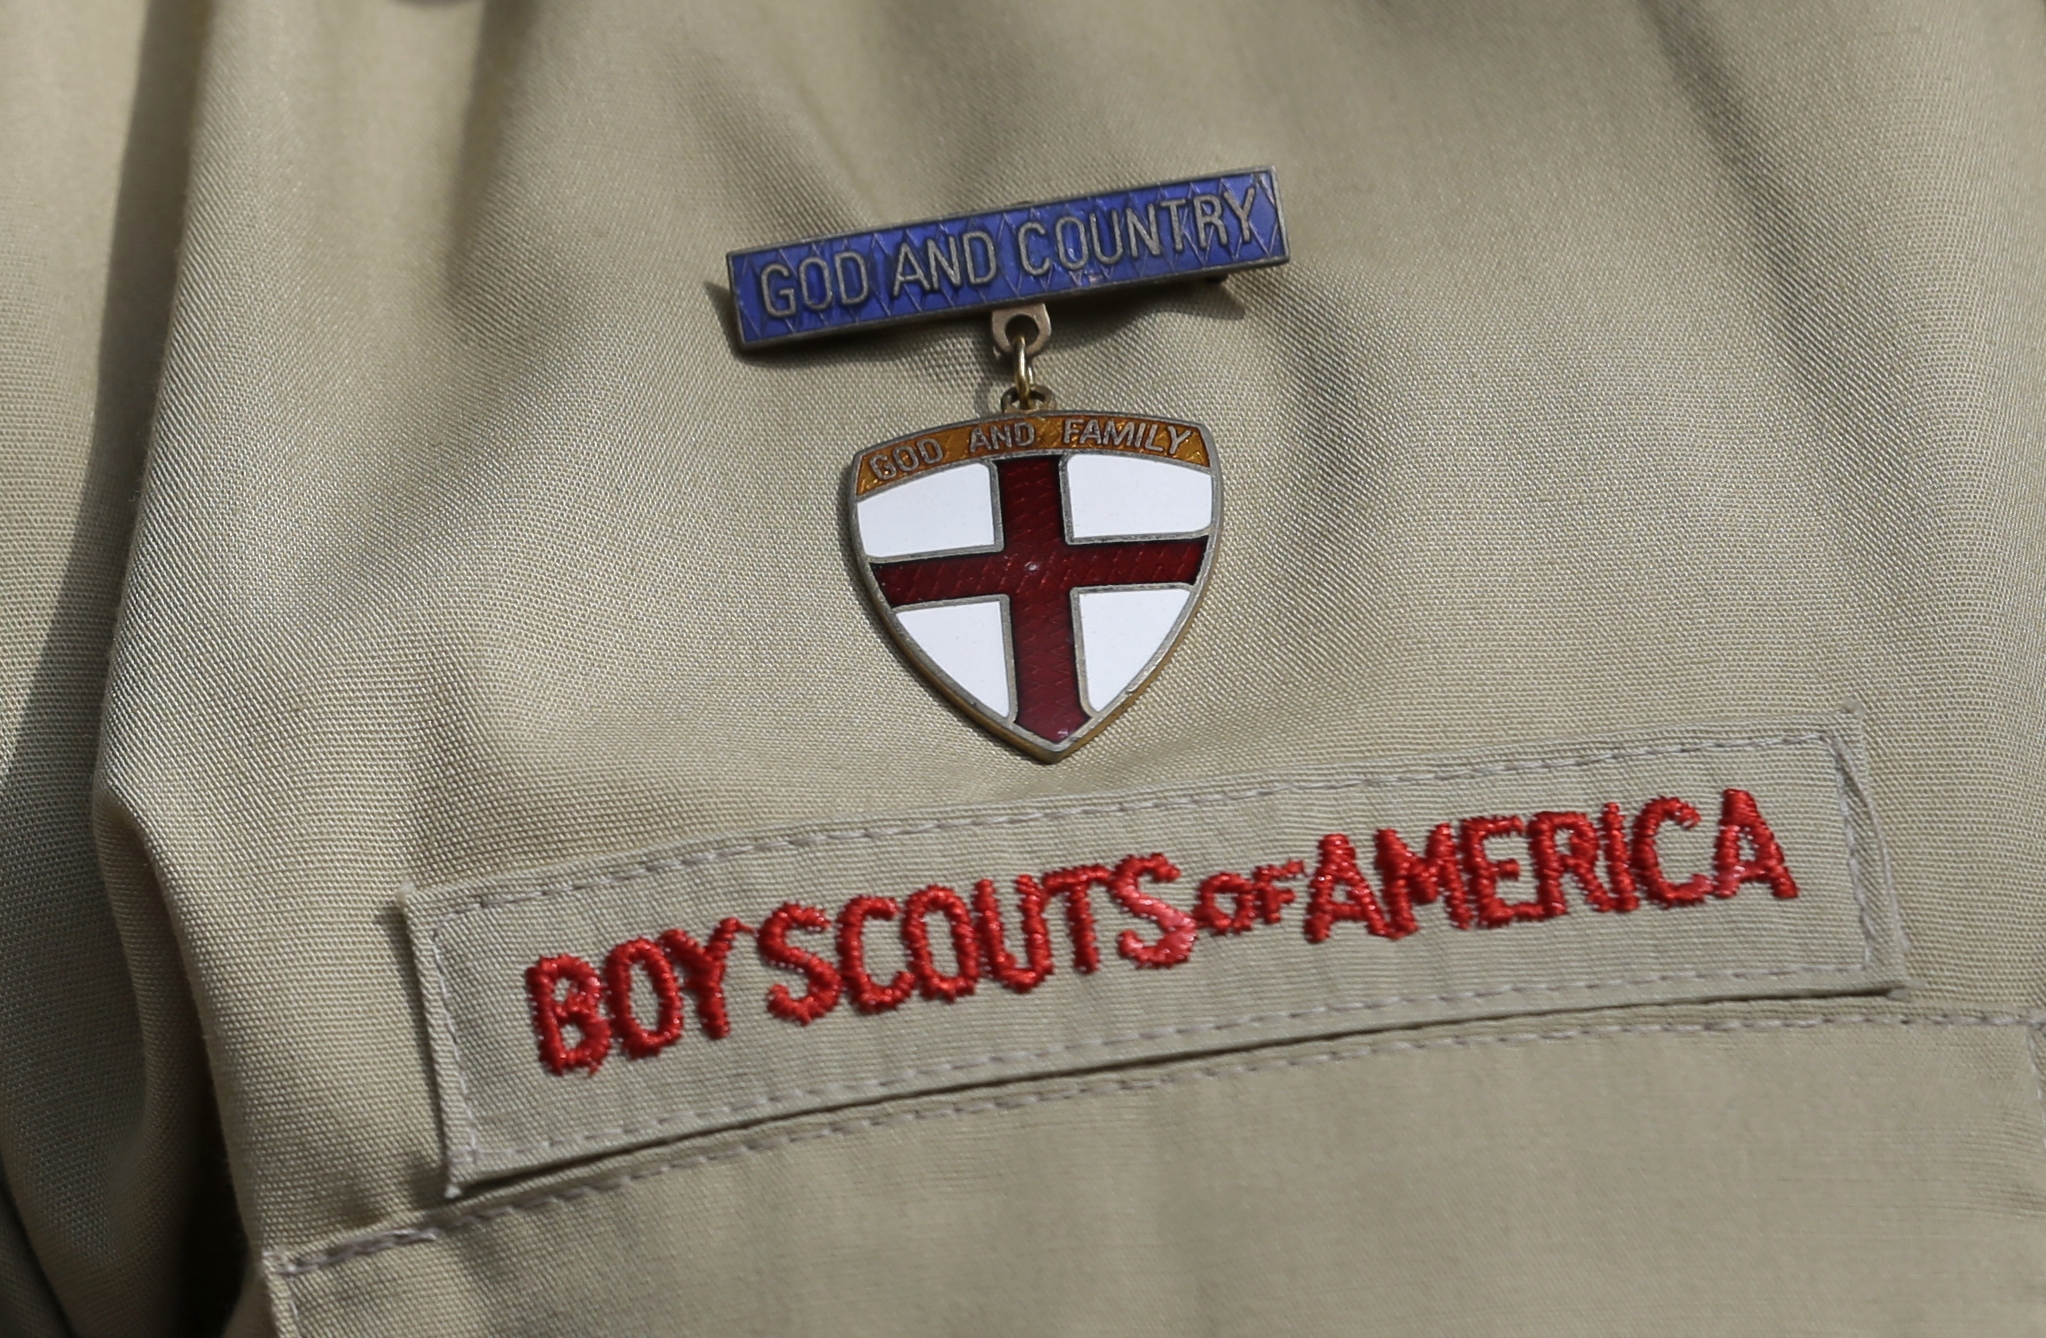 A detail of a Boy Scout uniform is seen during a news conference in front of the Boy Scouts of America headquarters in Irving, Texas, on Feb. 4, 2013. (Tony Gutierrez / Associated Press)